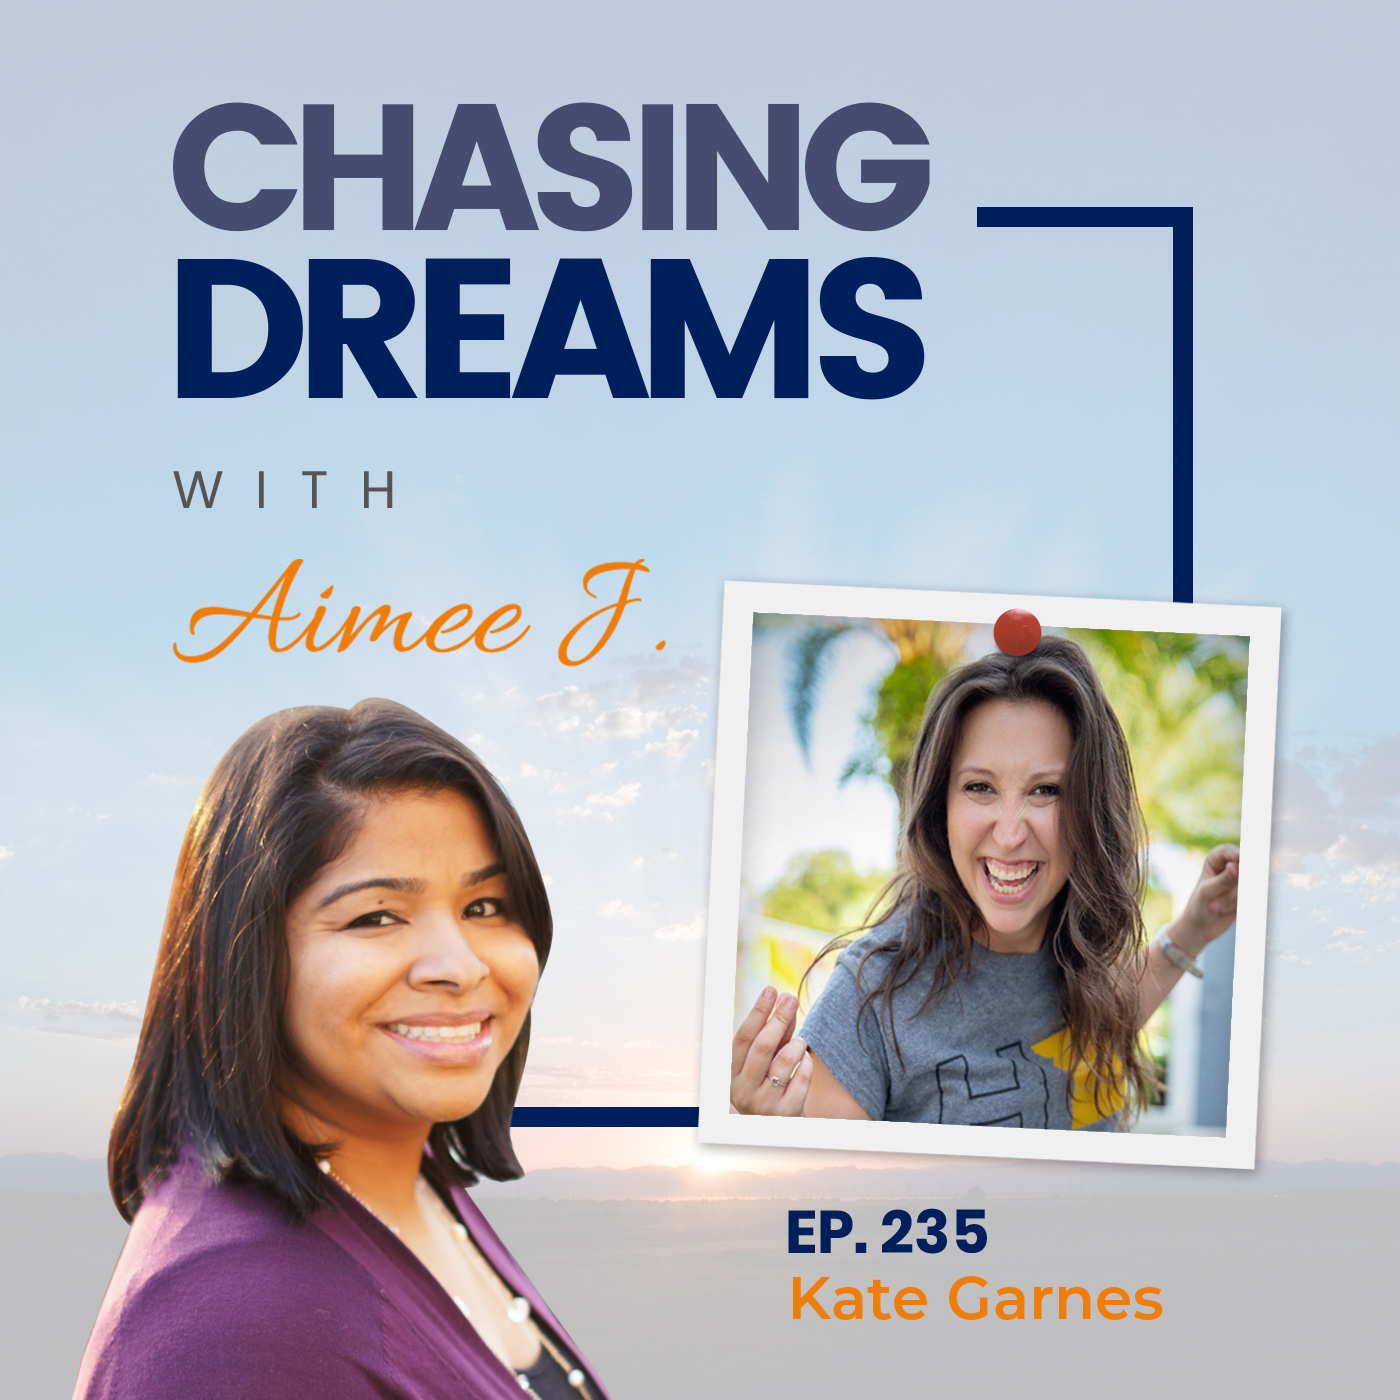 Kate Garnes on Chasing Dreams Podcast with Aimee J